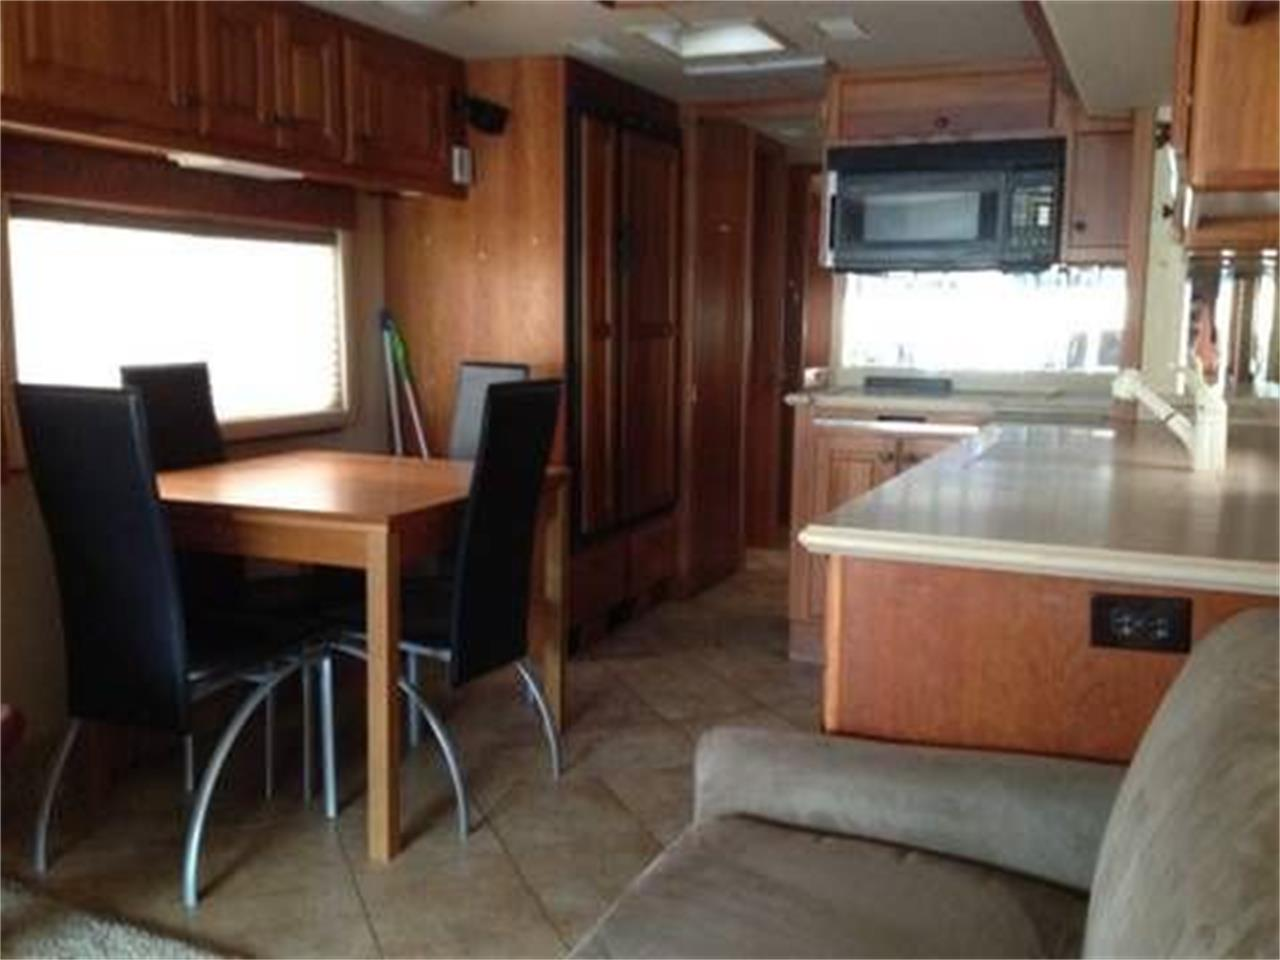 2002 Country Coach Intrigue for sale in Cadillac, MI – photo 11